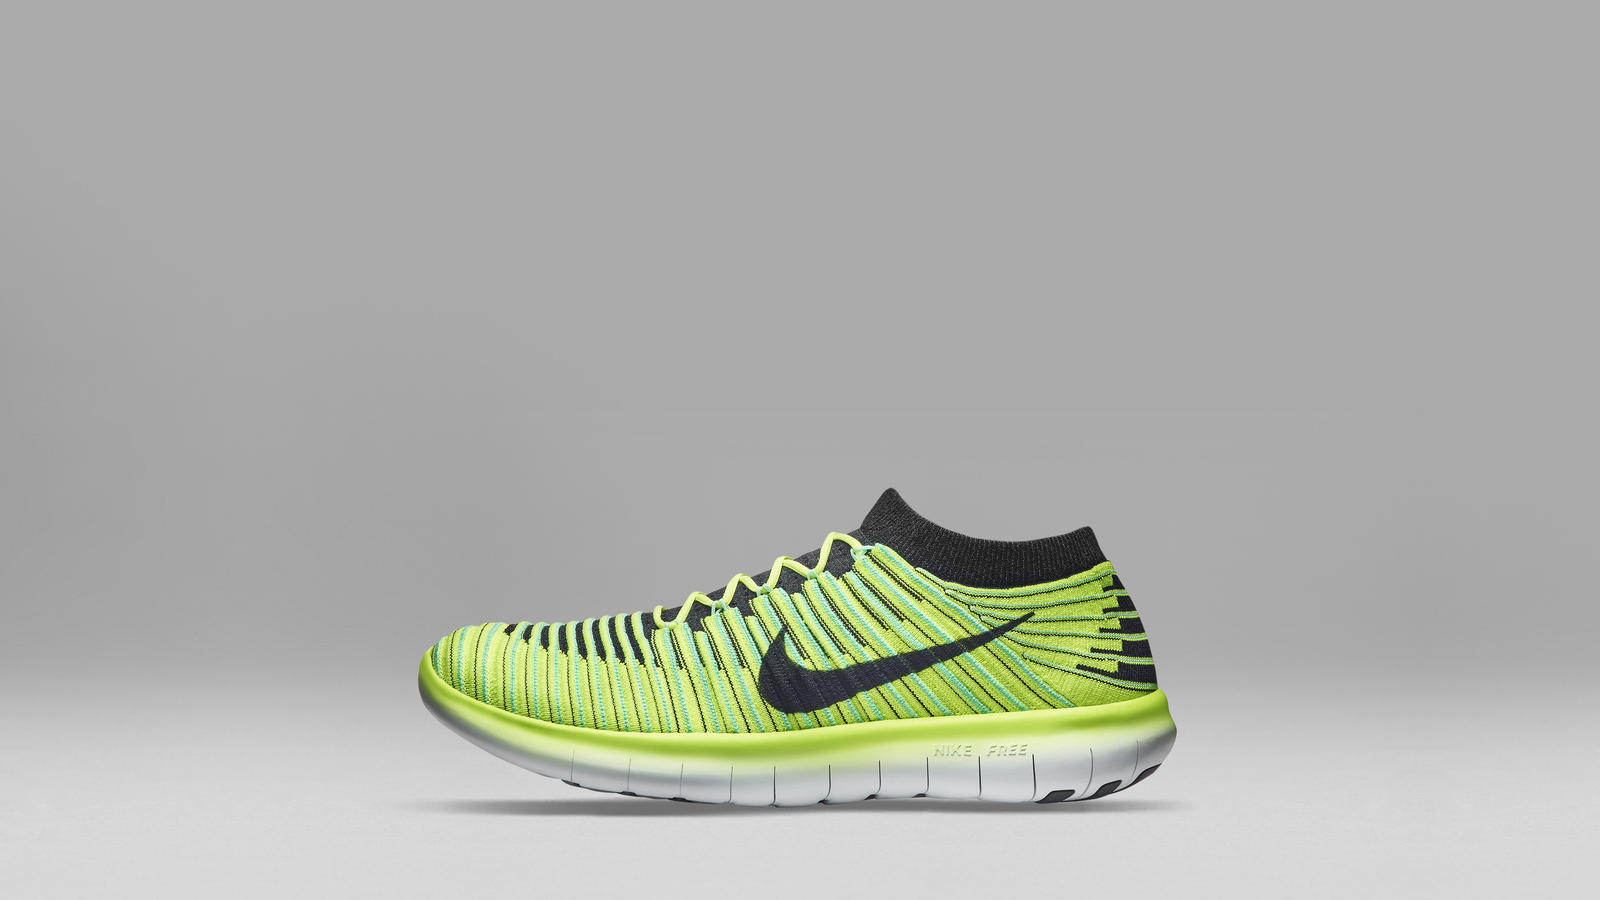 c8636c27ef42 Nike Free RN Motion Flyknit Evolves the Nike Free Legacy - Nike News